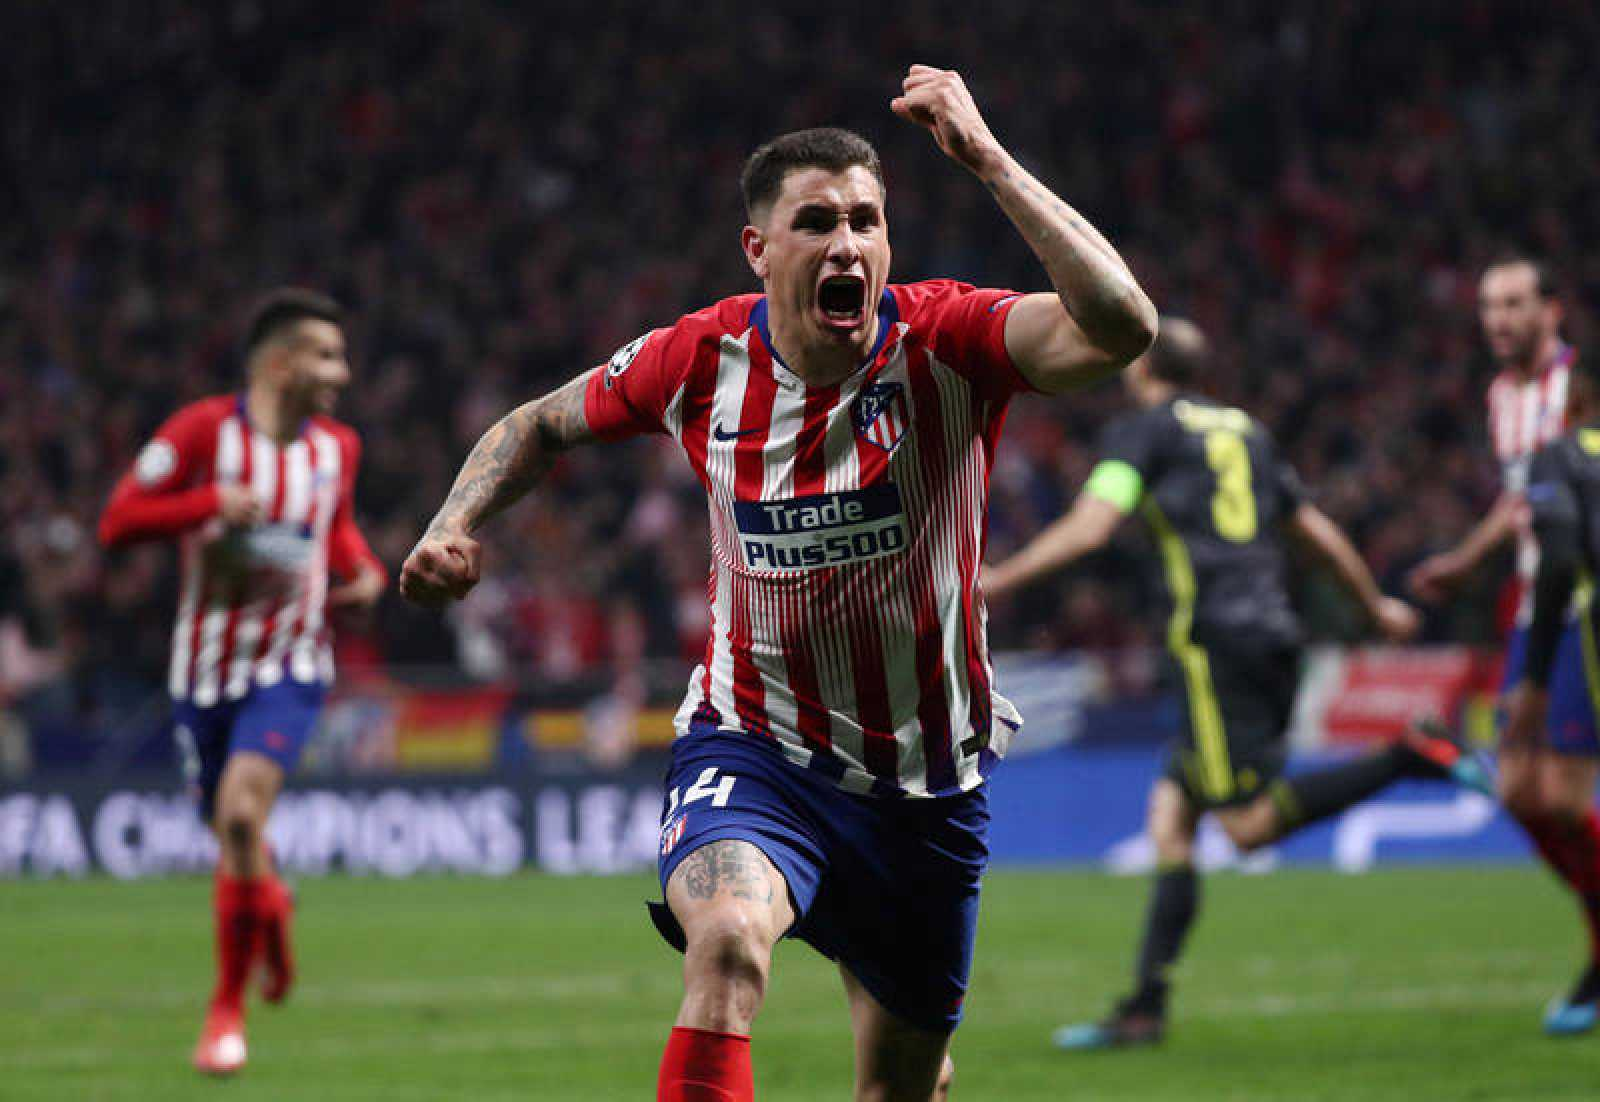 Champions League - Round of 16 First Leg - Atletico Madrid v Juventus